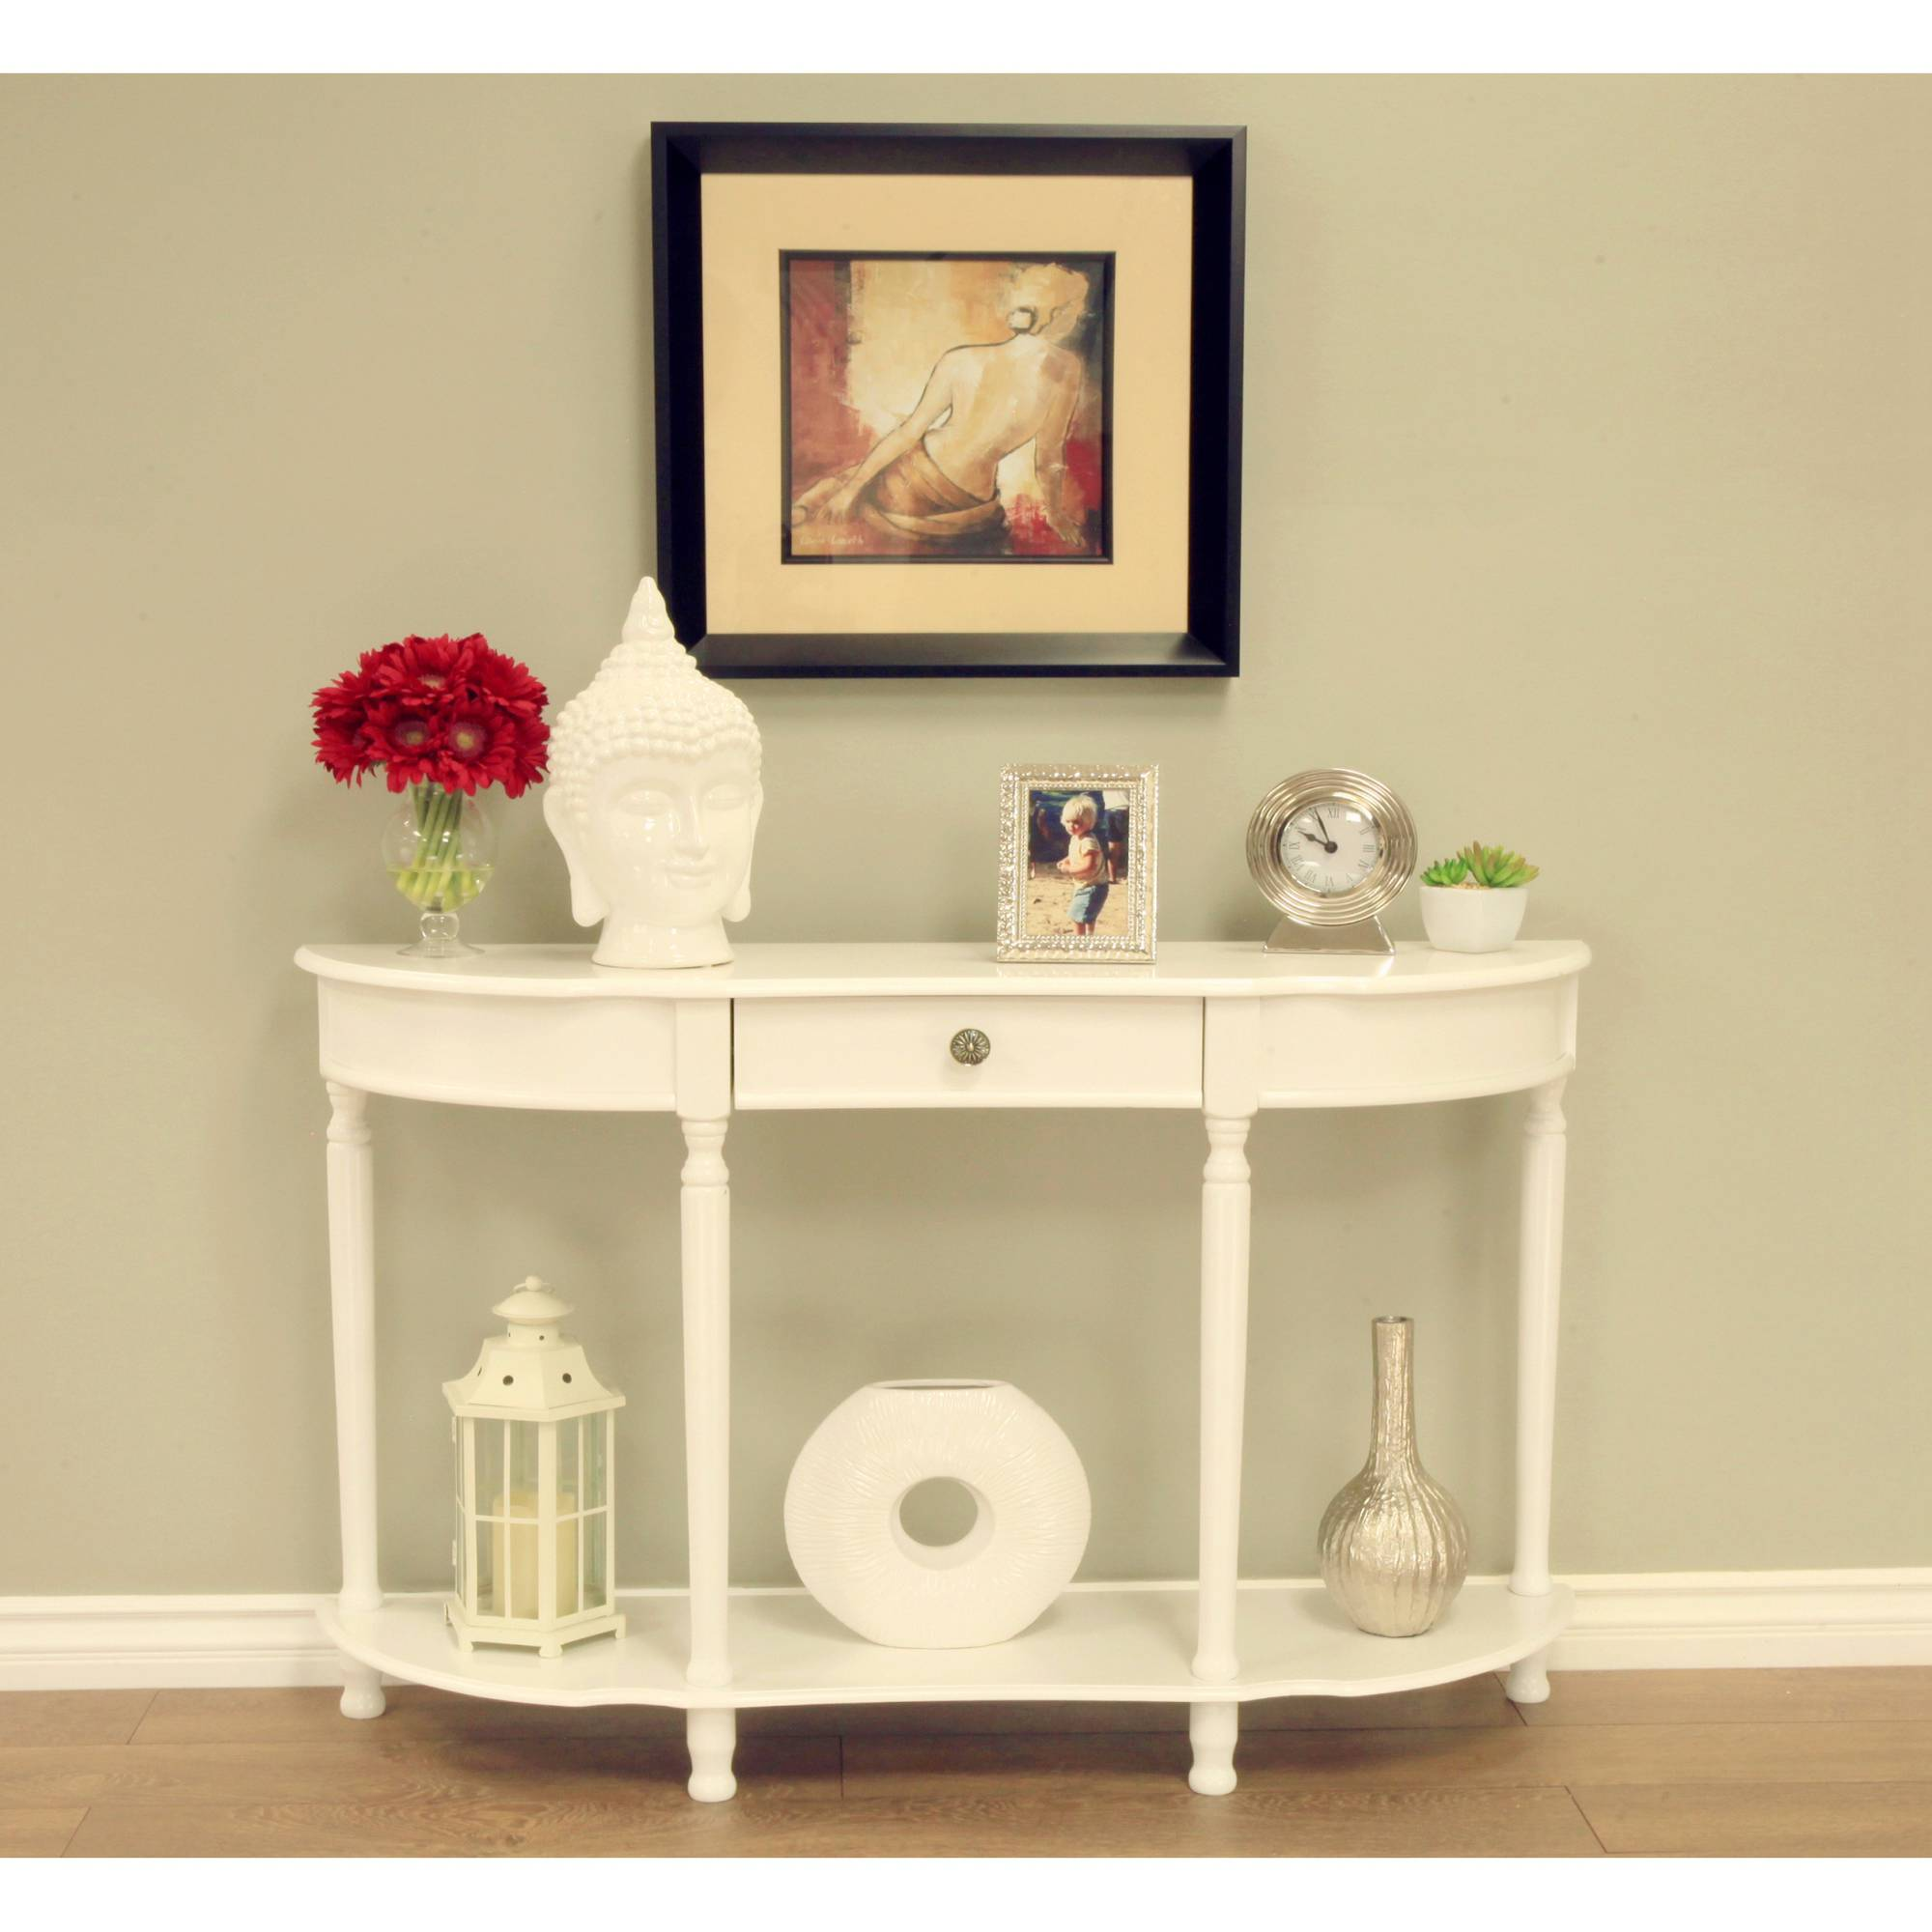 Home Craft Console Sofa Table with Drawer, White by Maga Home